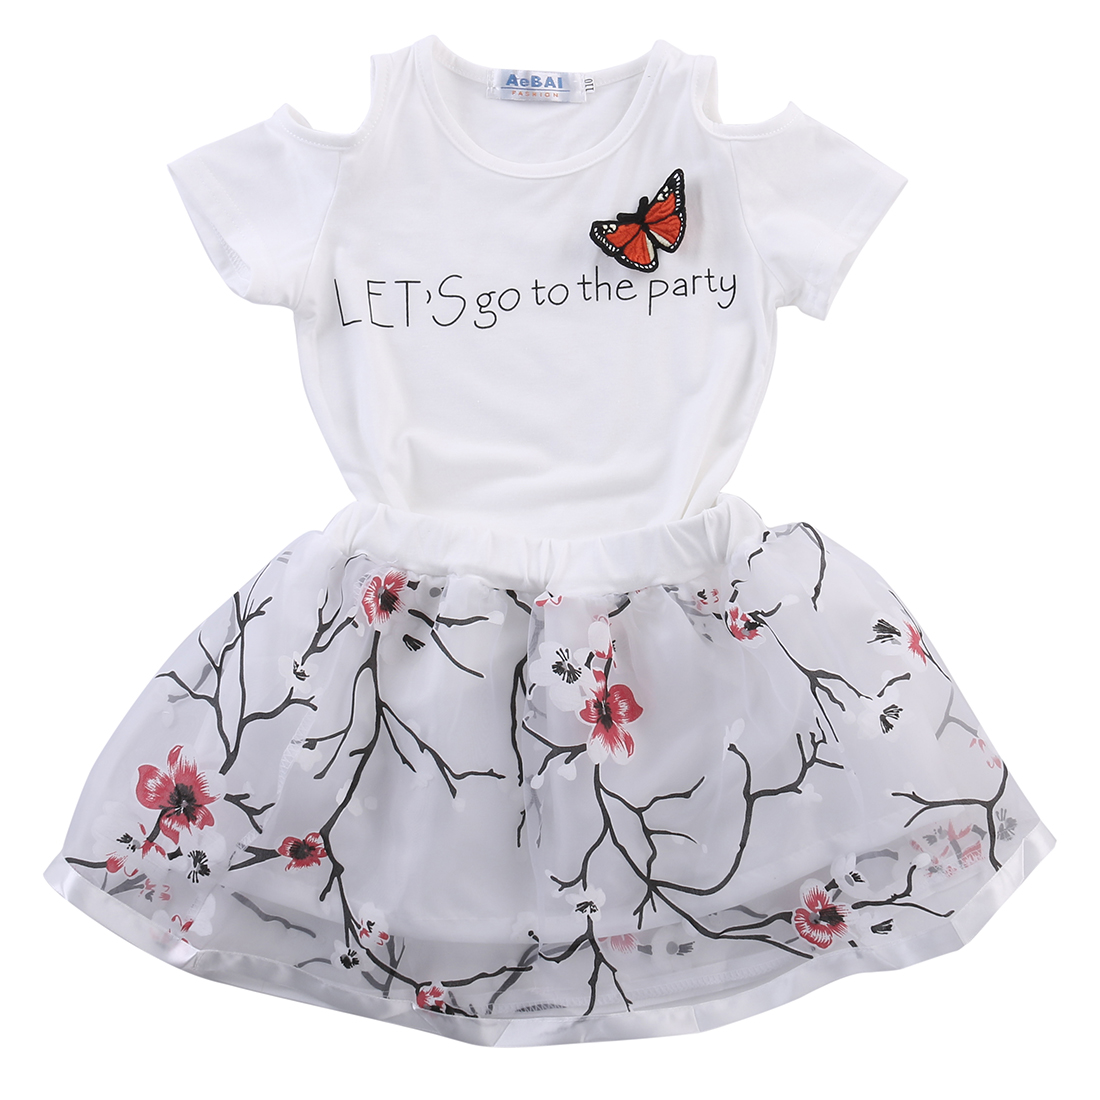 Sporting Fashion Kids Baby Girls Flower Off Shoulder Tops Skirts Dress Casual Crew Neck Outfit Clothes Set Girls' Clothing